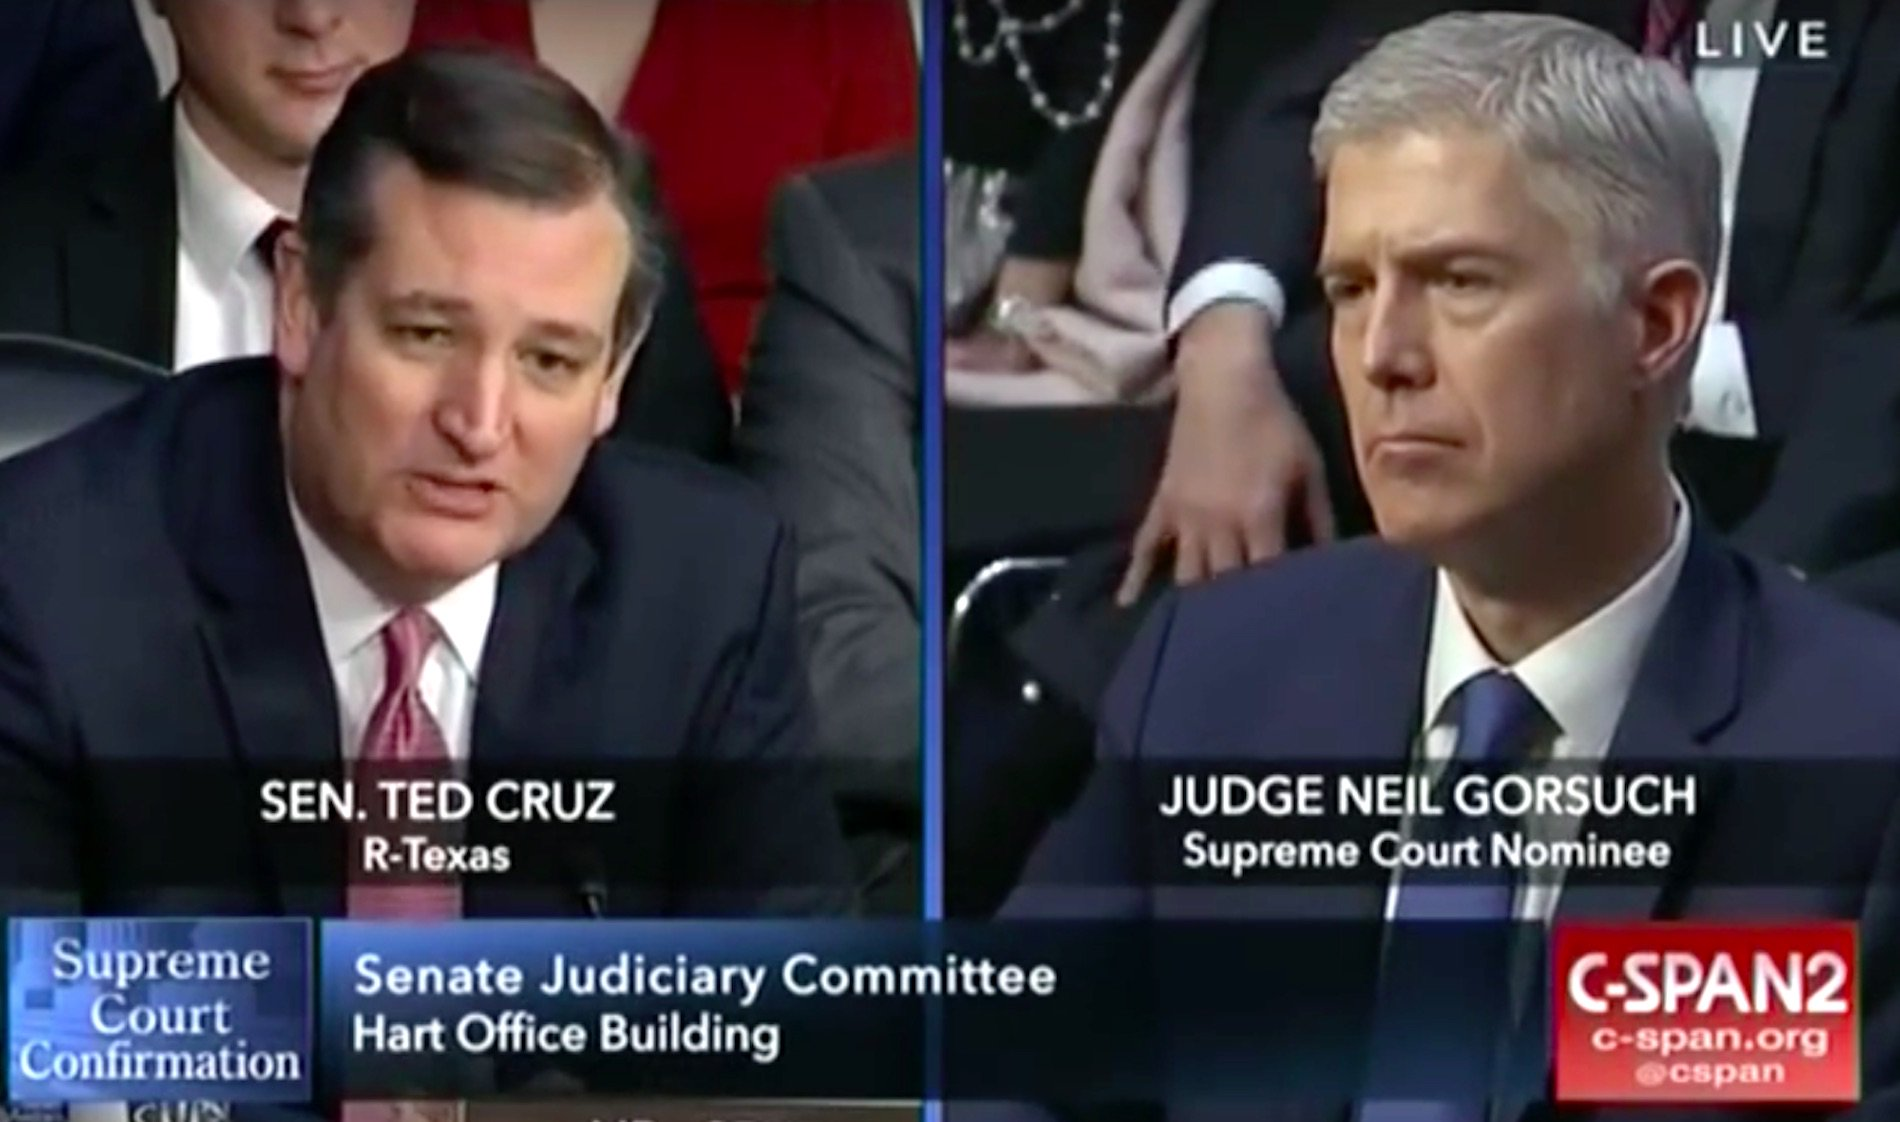 Ted Cruz slams Democrats' hypocrisy during Gorsuch confirmation hearing  https://t.co/yacp9vcCJe https://t.co/0WNUFO9l1J